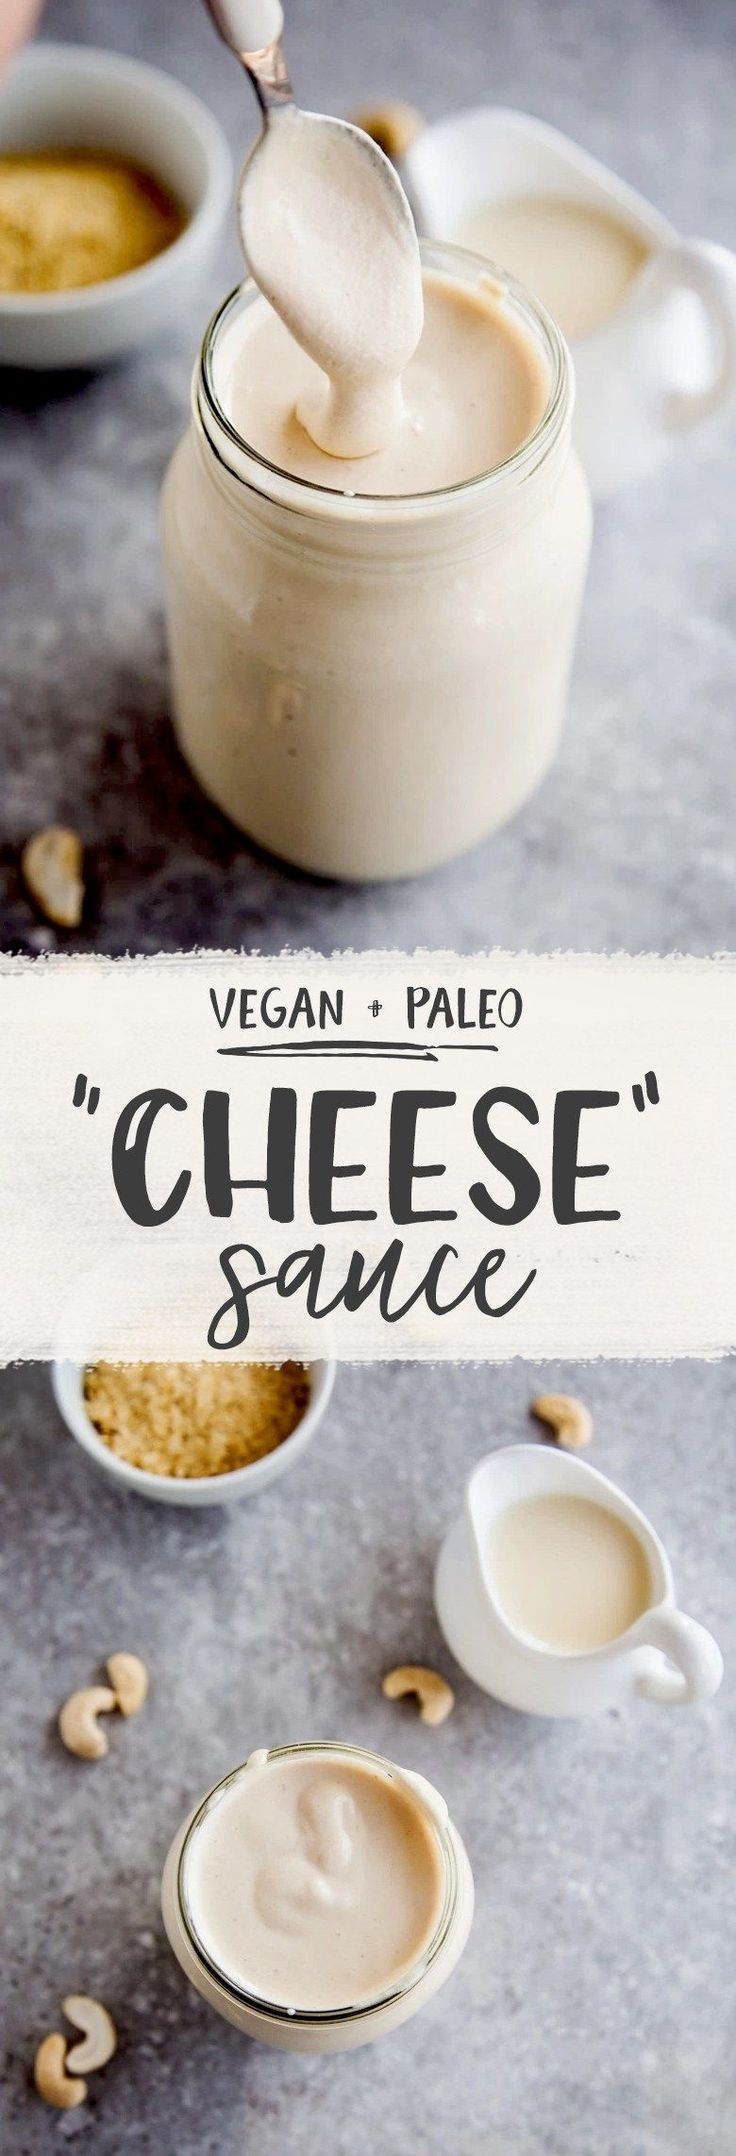 Cashew Cheese Sauce replace almond milk with the sour cream stuff and water. Like 2 tbsp of sour cream and 1/2 cup of water. Add garlic salt instead of regular salt.